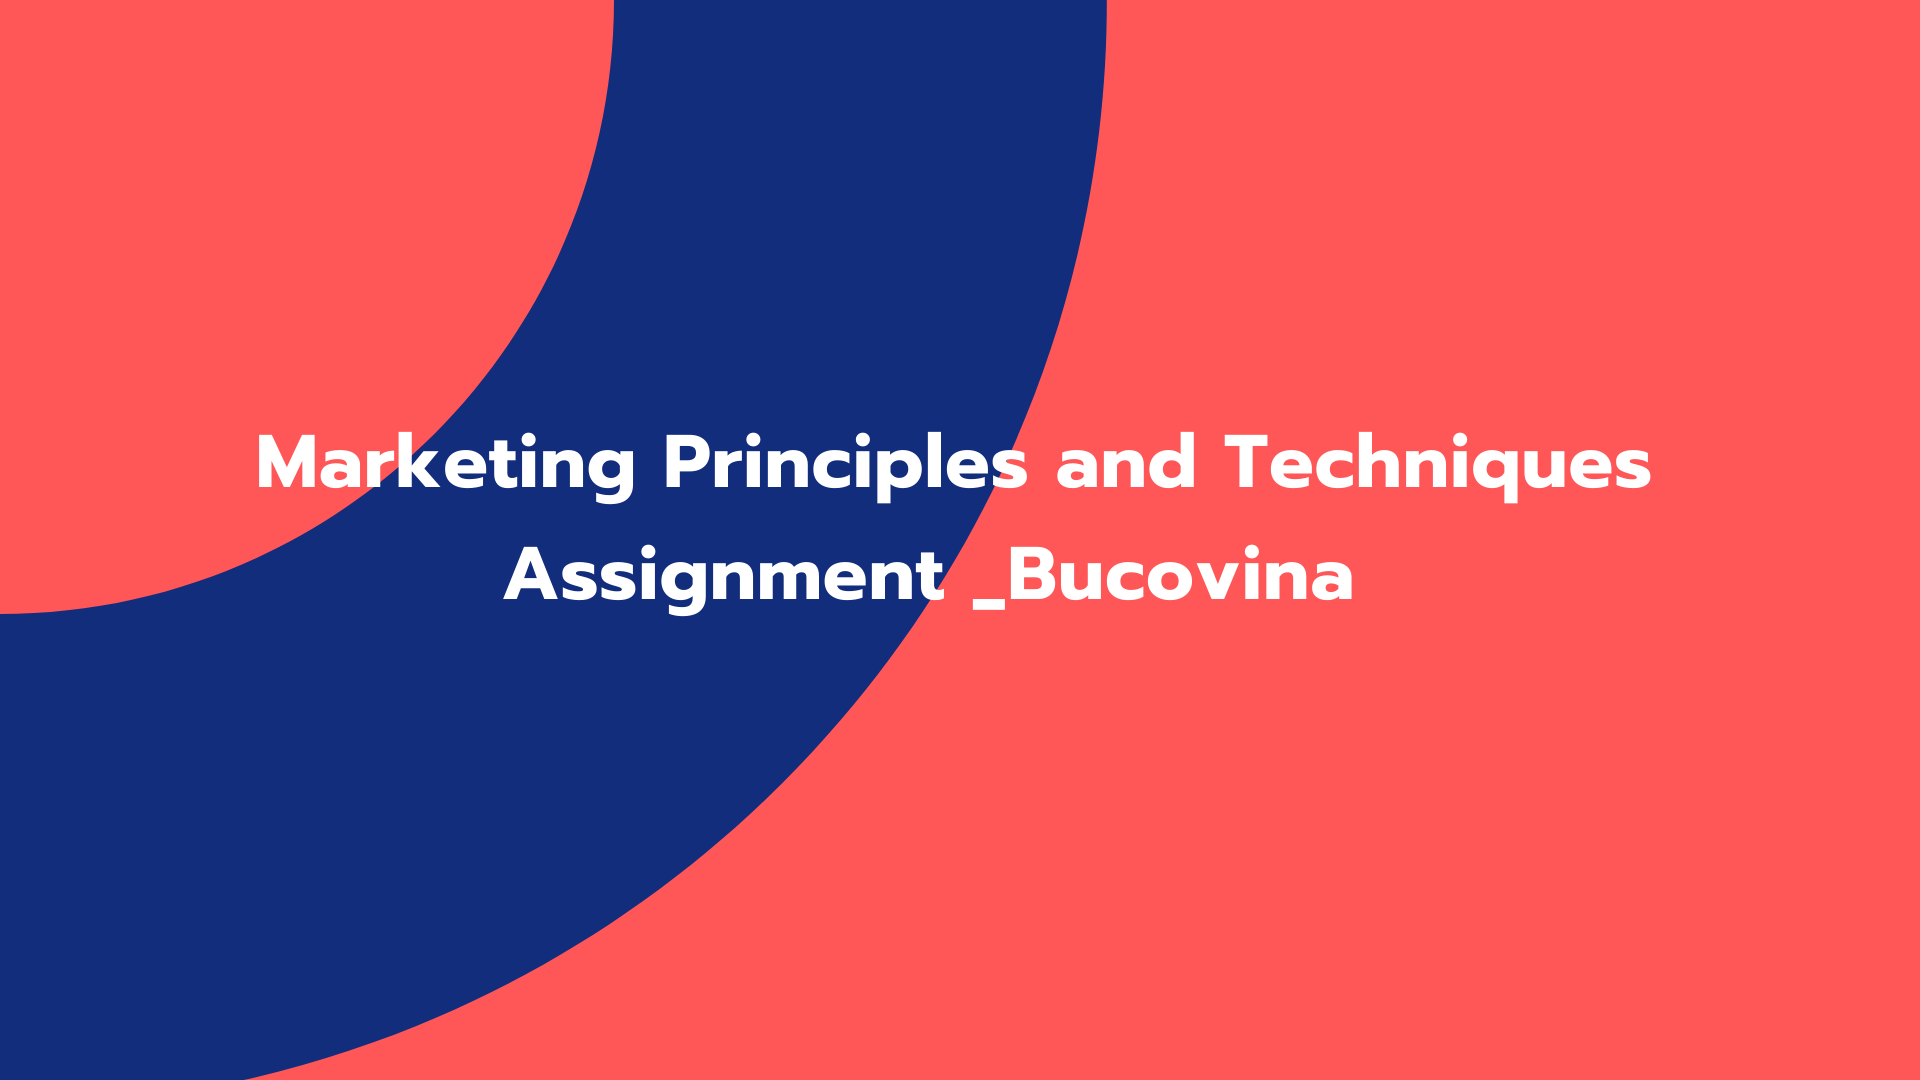 Marketing Principles and Techniques Assignment _Bucovina